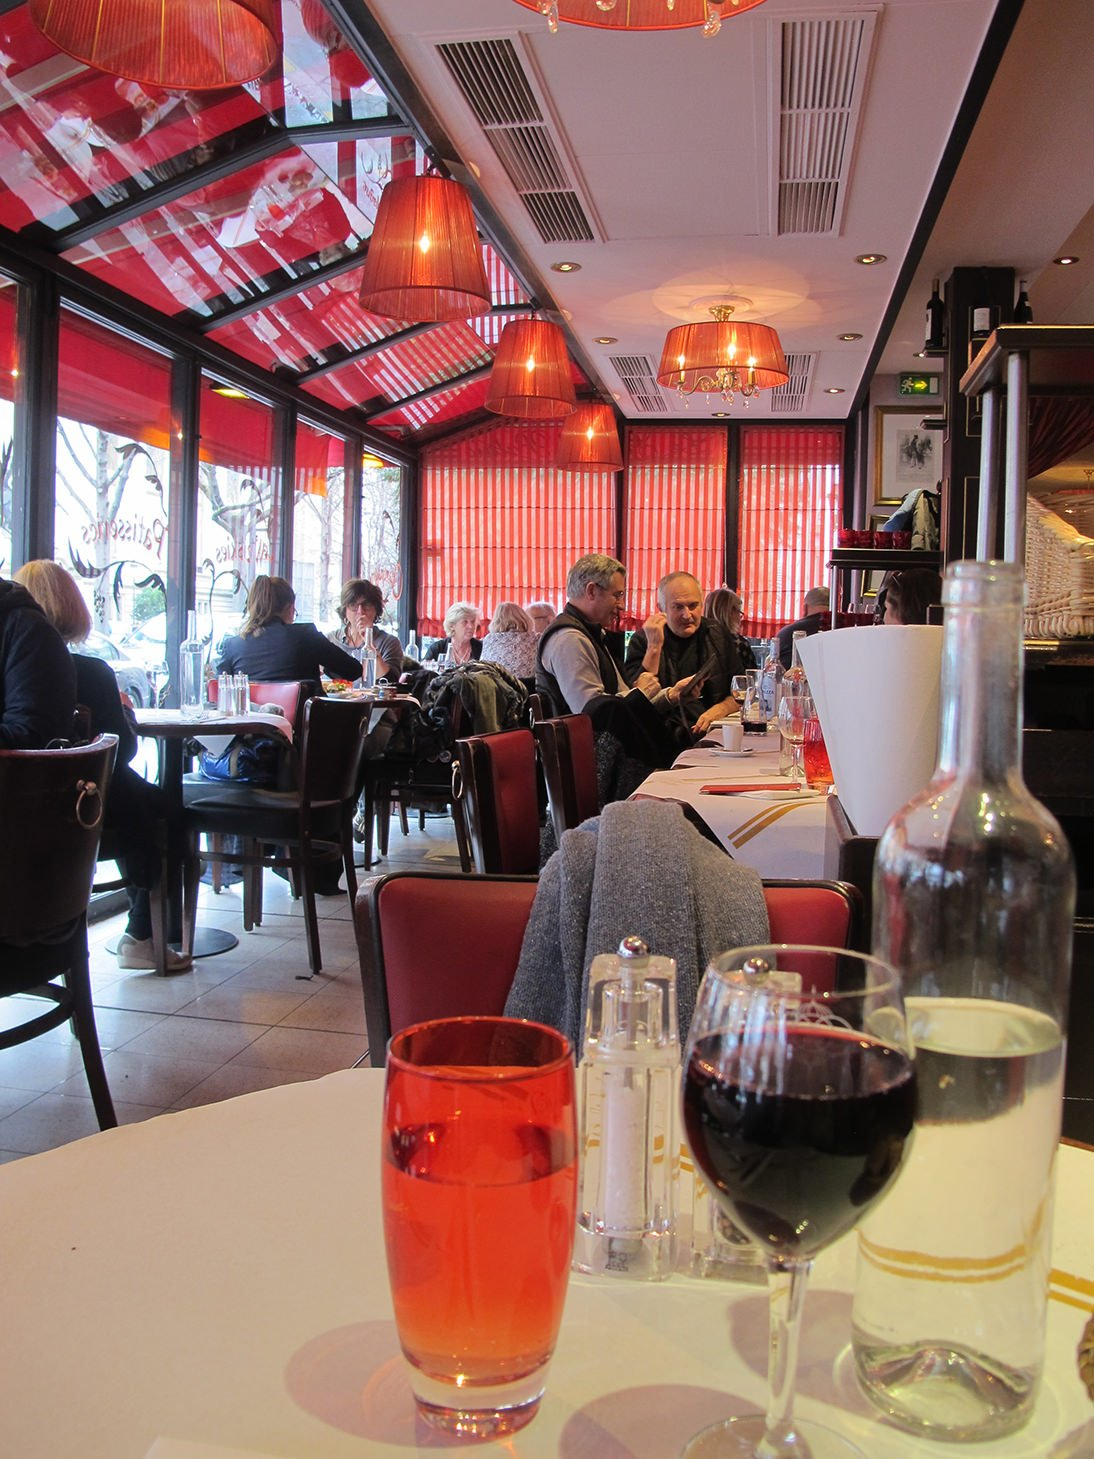 Paris, France, travel, cafe, brasserie, restaurant, wine